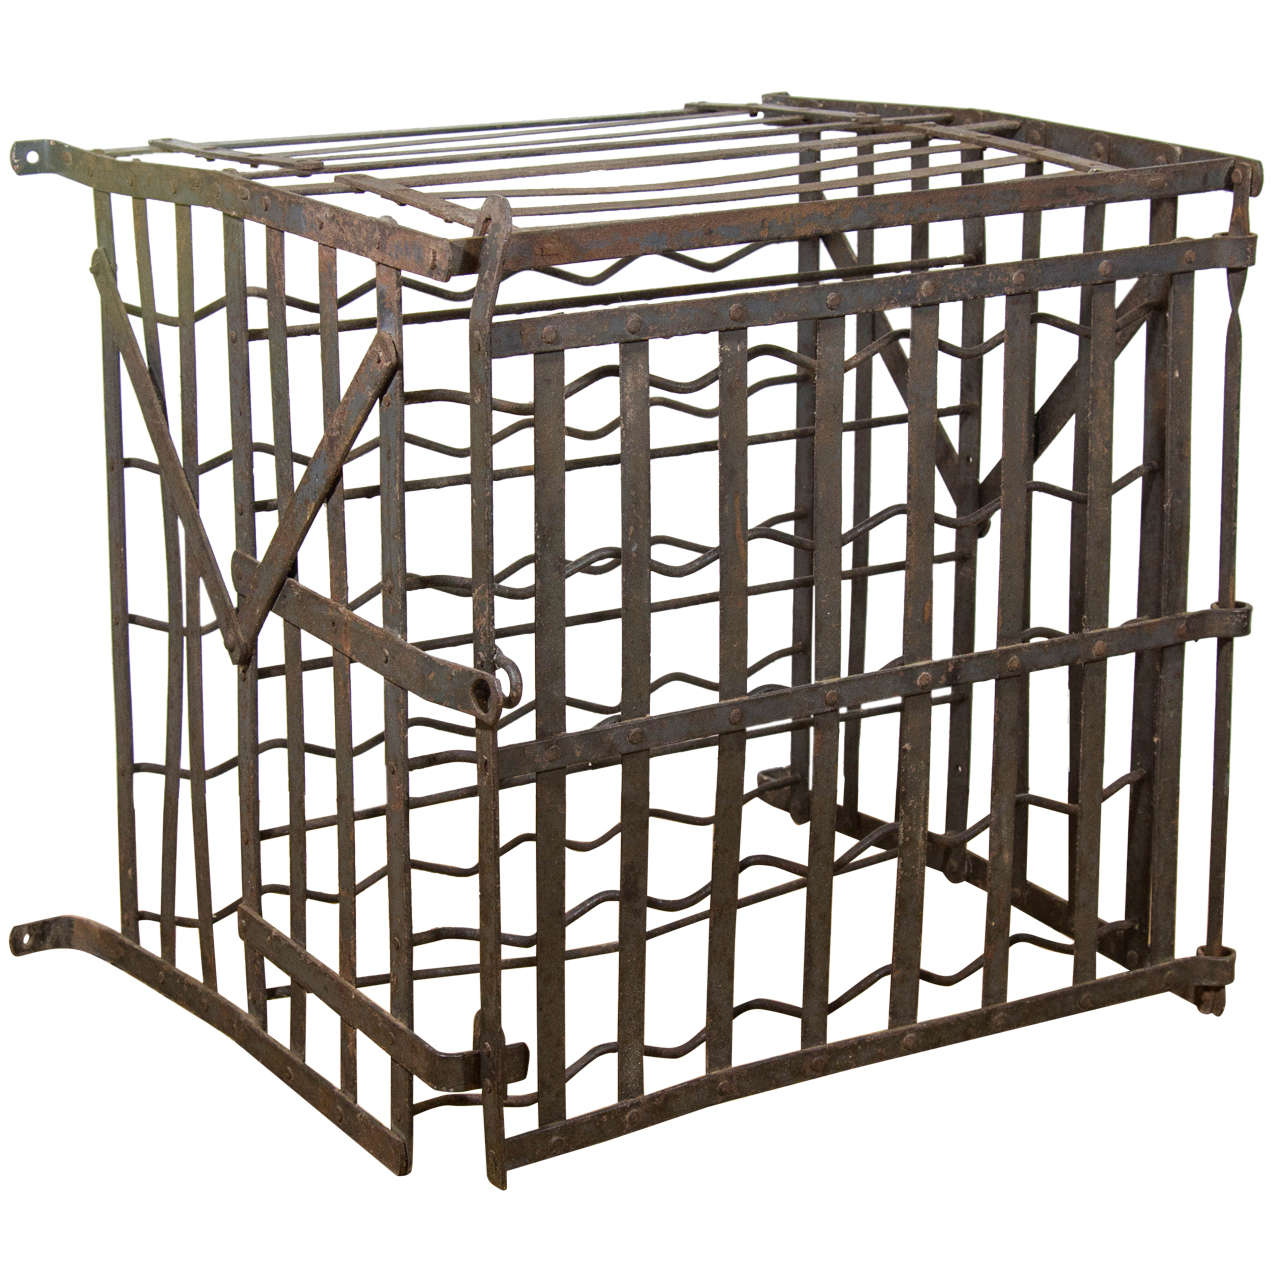 Iron Wine Rack Wall Mounted 20th Century German Iron Wall Mounted Wine Rack At 1stdibs